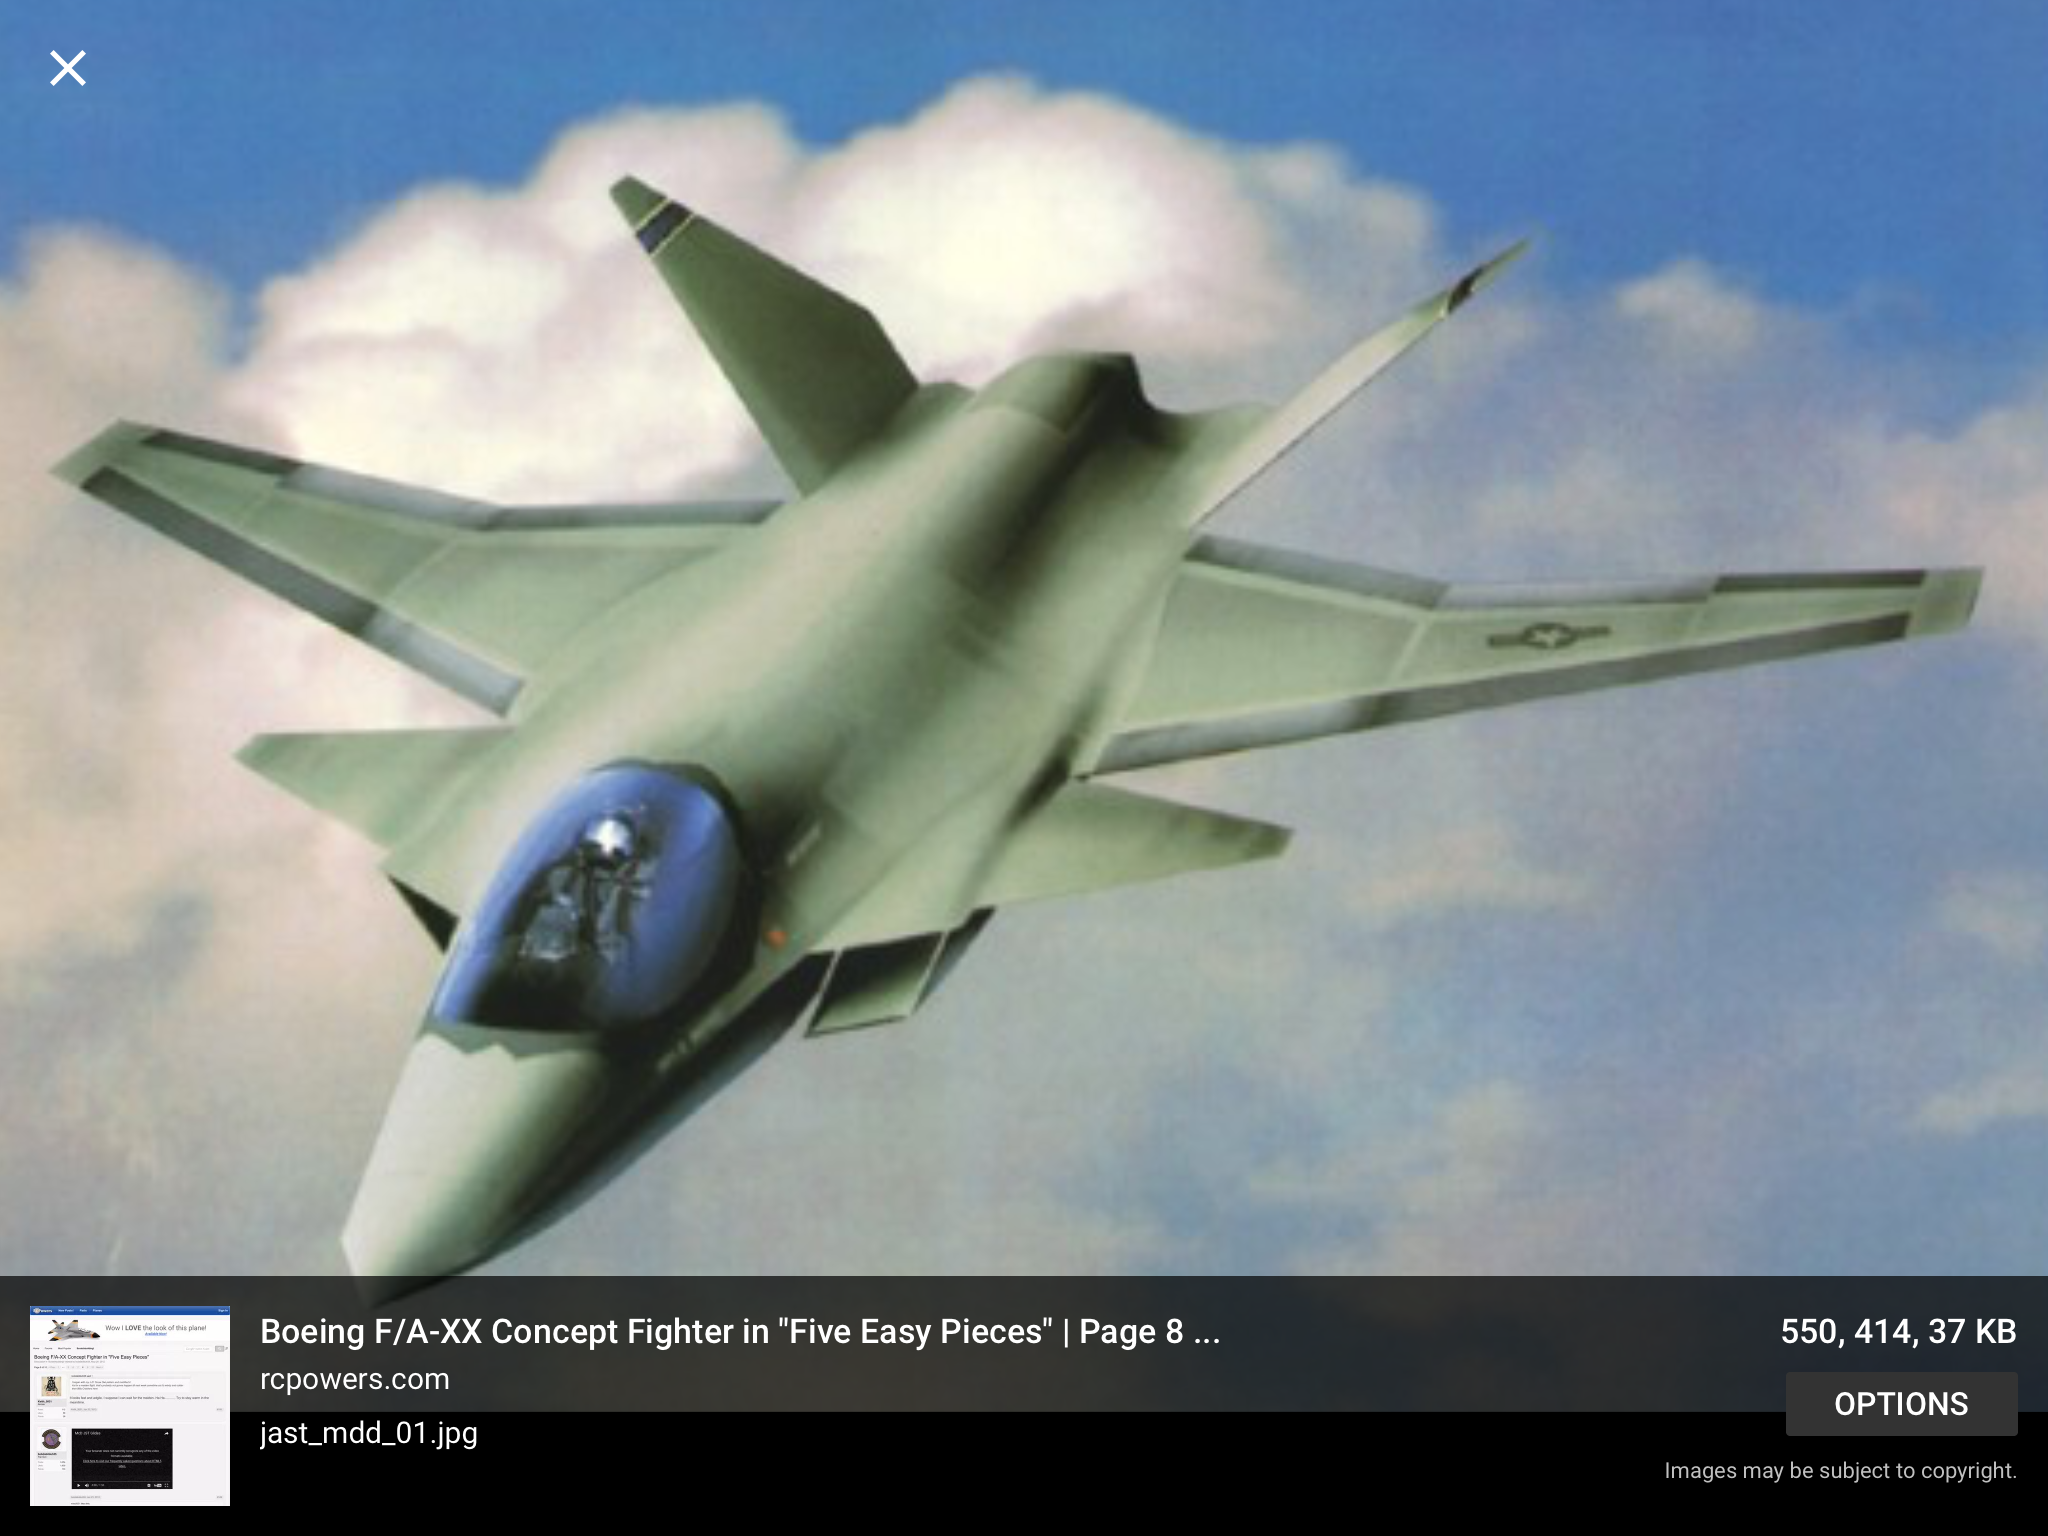 With the recent advances in technology and design aircraft concepts - Boeing F A Xx Fighter Concept